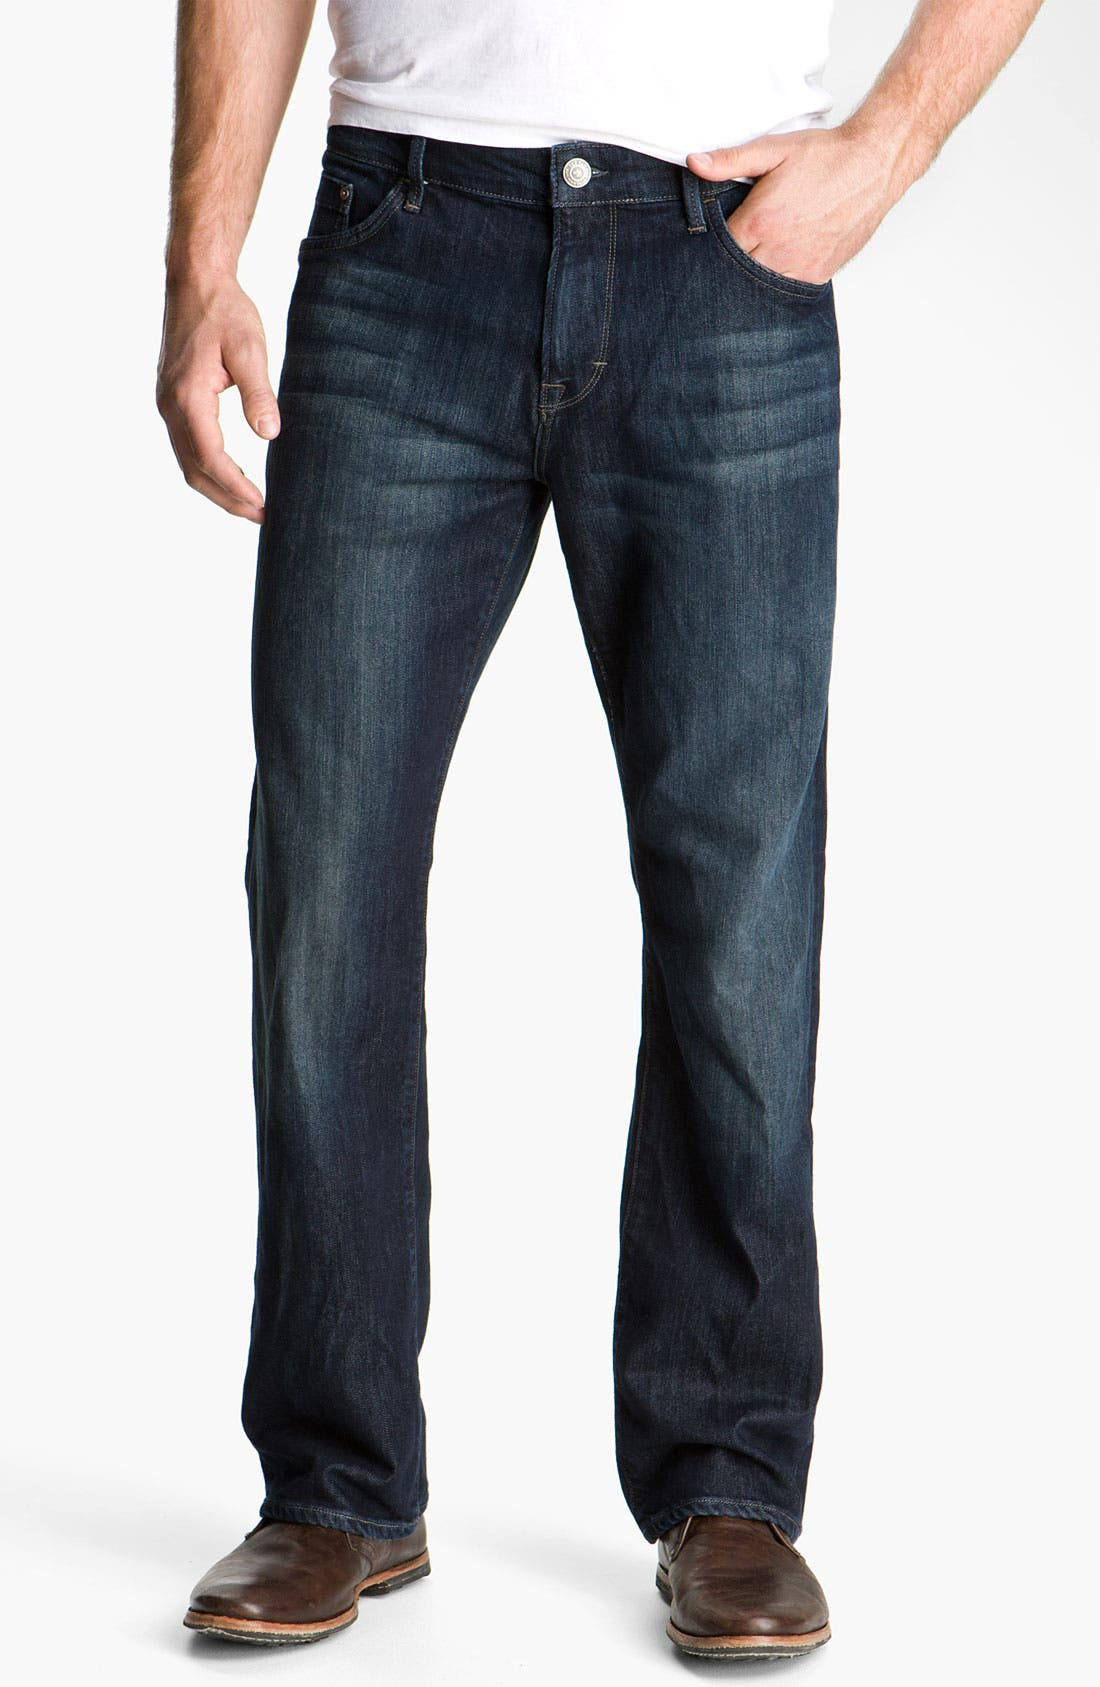 Alternate Image 1 Selected - Mavi Jeans 'Matt' Relaxed Fit Jeans (Deep Stanford Comfort) (Regular & Tall) (Online Only)